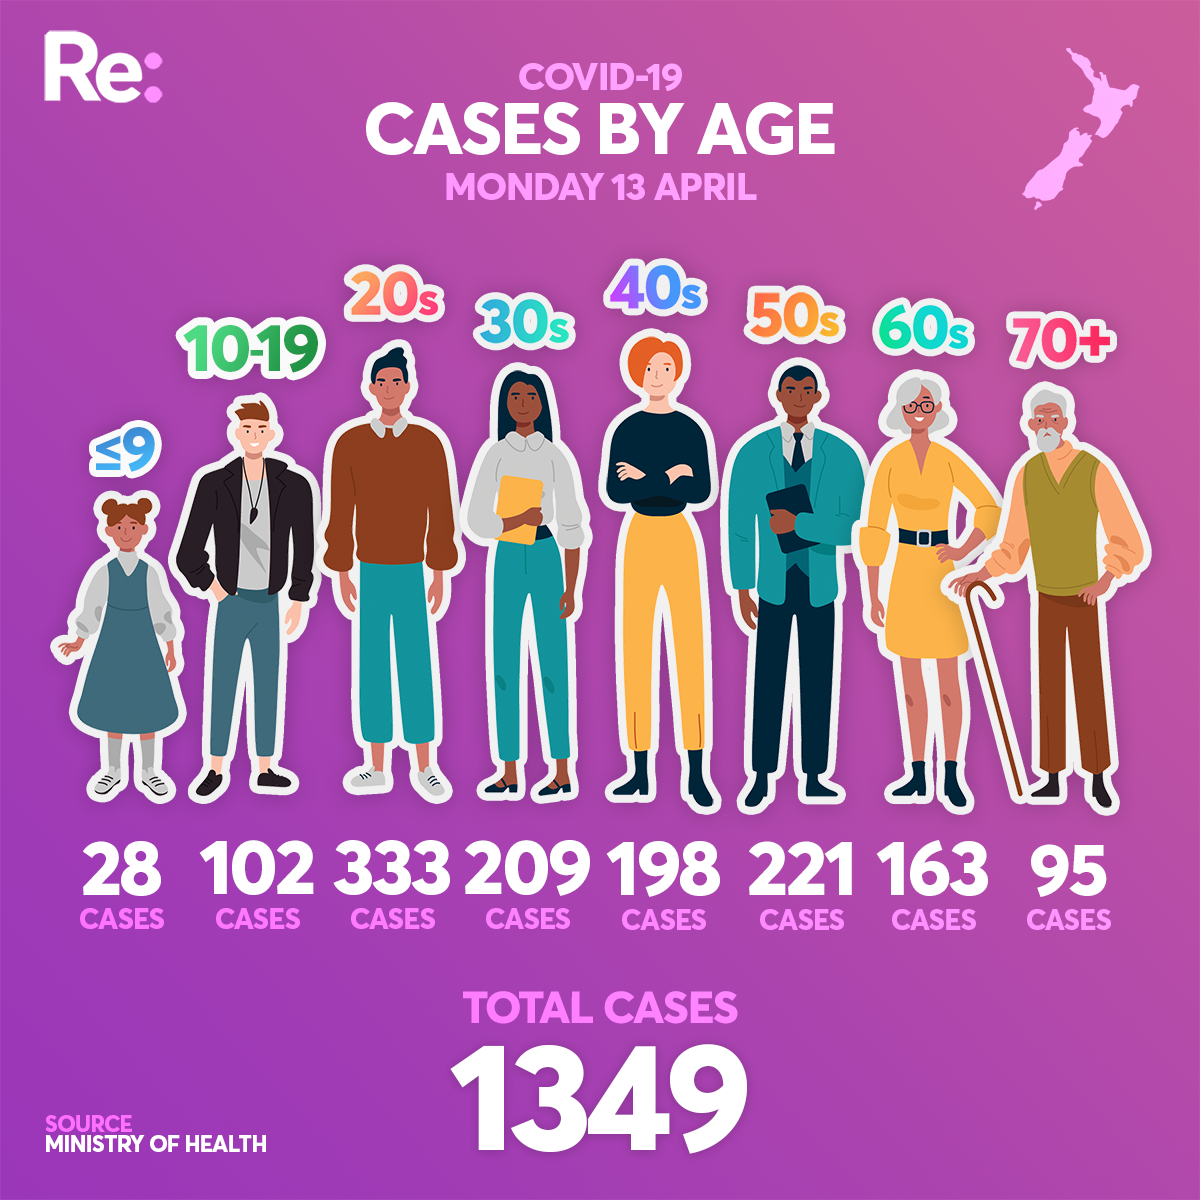 Age of cases April 13